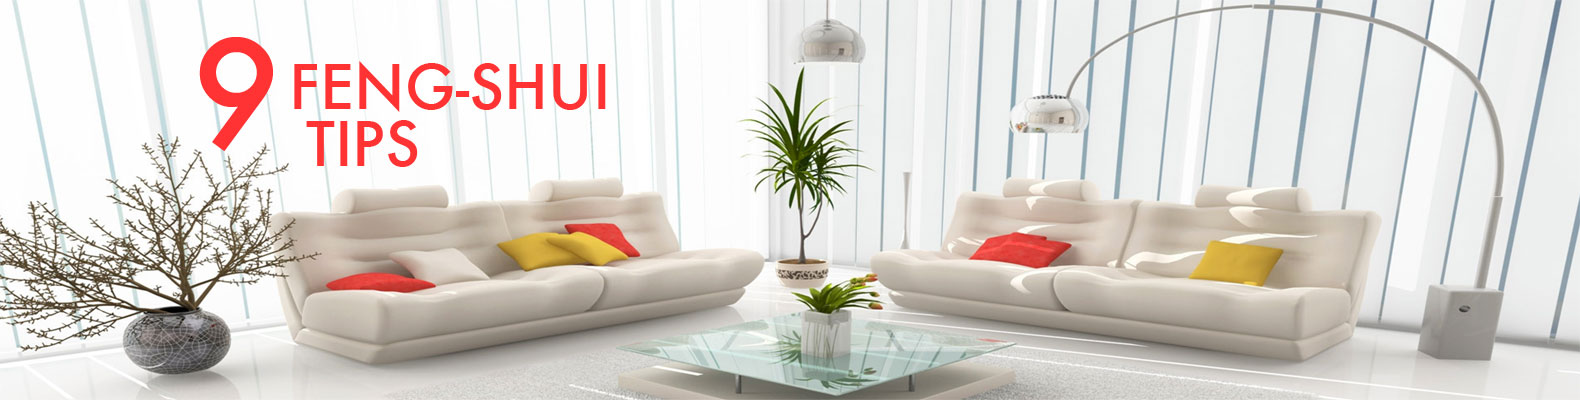 9 Simple Tips To Feng Shui Your Home Tip 1 Fix Any Door